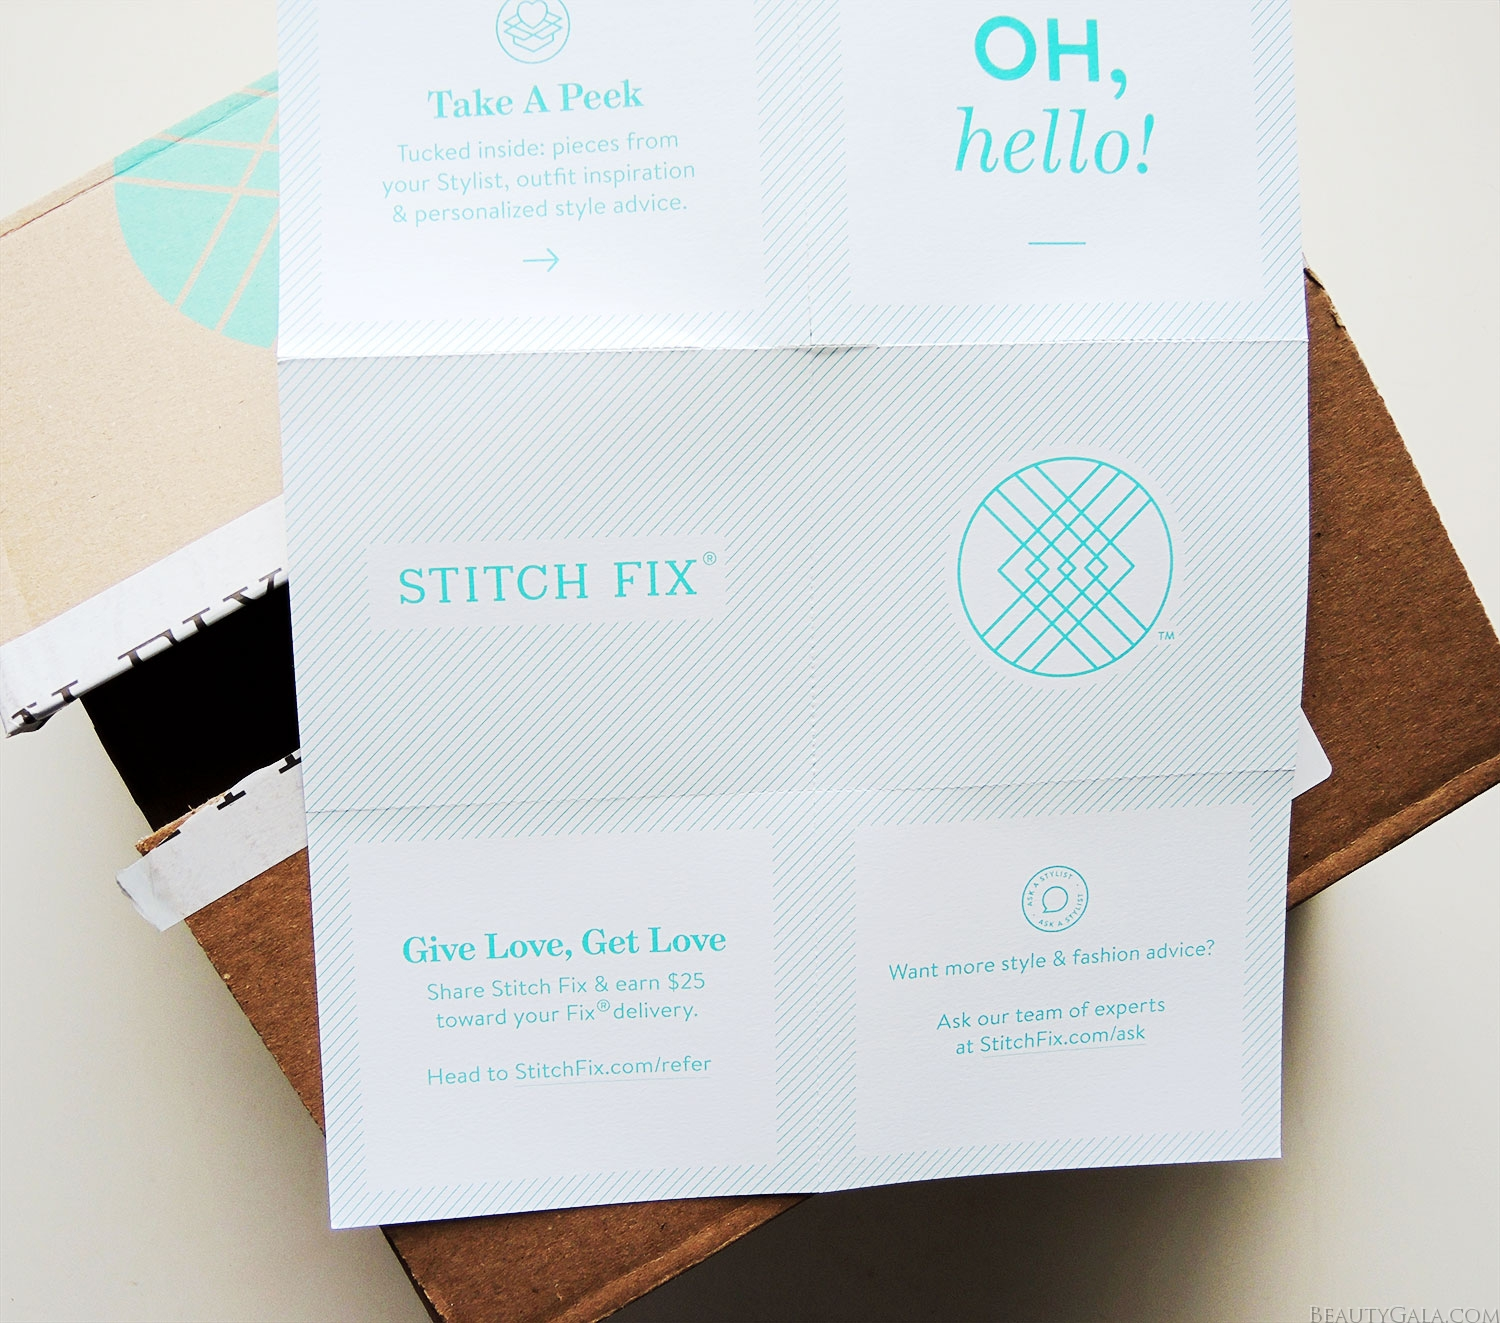 stitch fix, stitchfix, stitchfix box, stitchfix review, stitch fix review